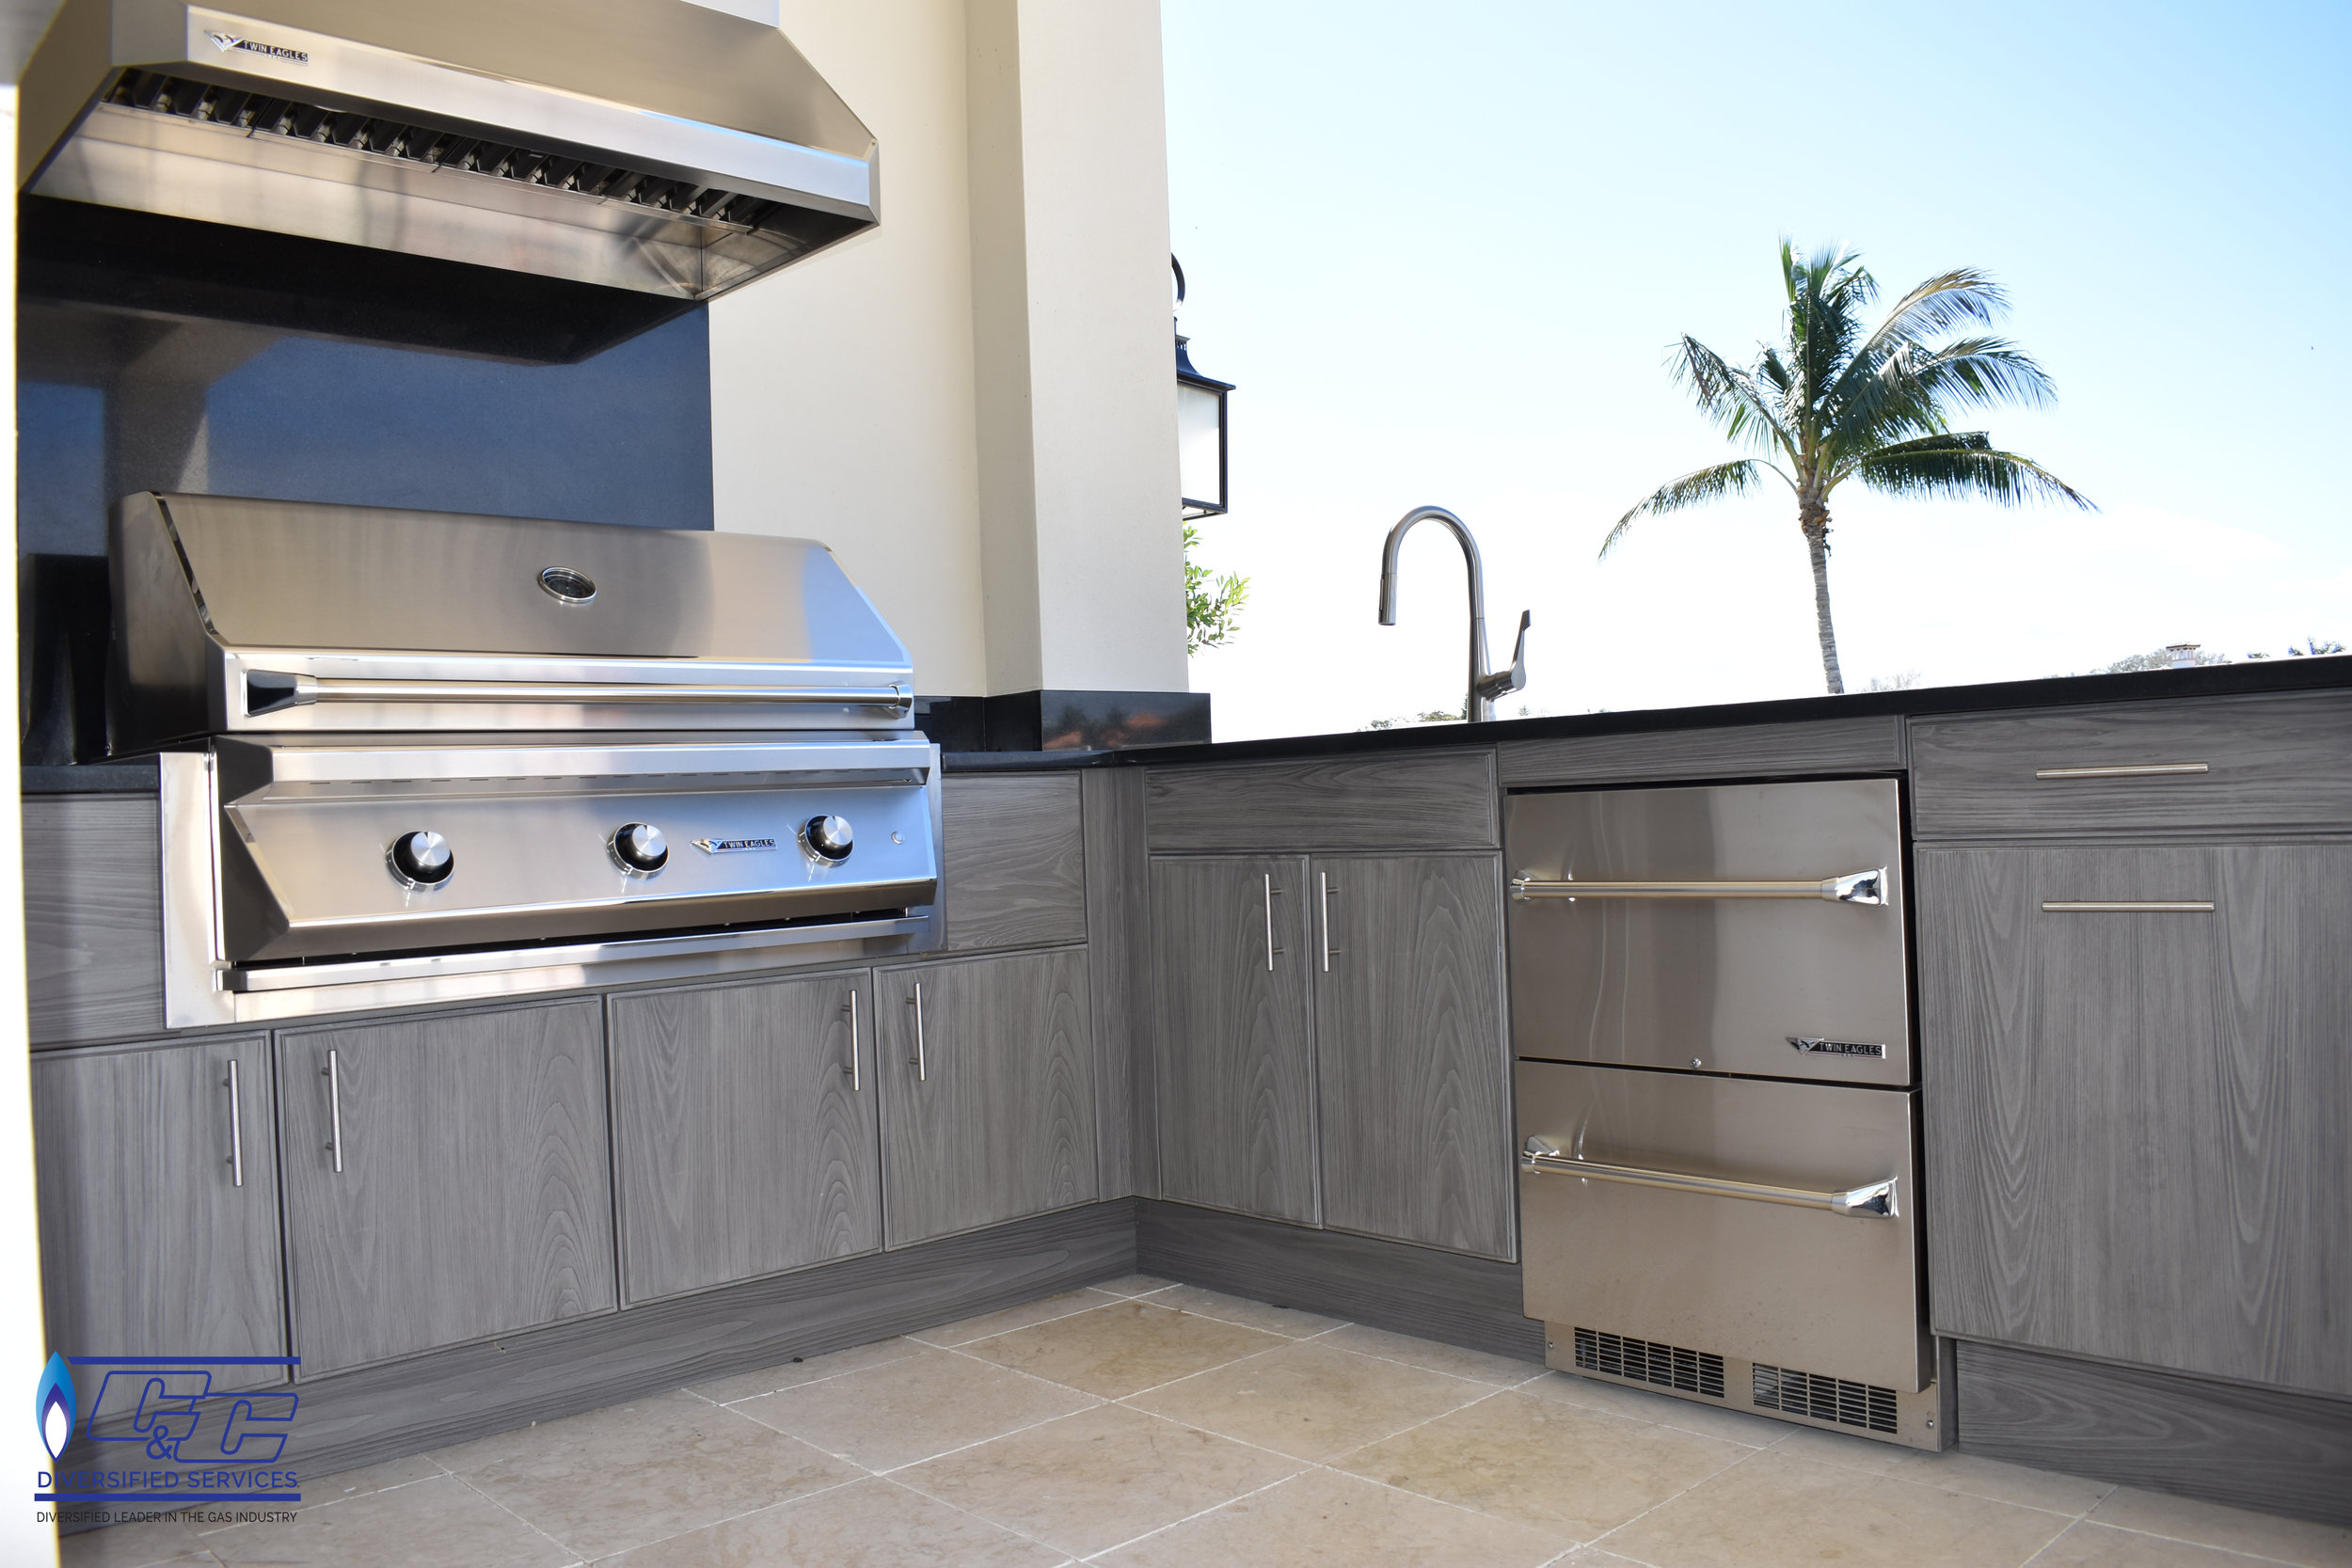 """NatureKast Weatherproof Cabinetry with Twin Eagles 42"""" Grill, Vent Hood, and Outdoor Two-Drawer Refrigerator. Stainless Steel Under-Mount Sink with Faucet"""